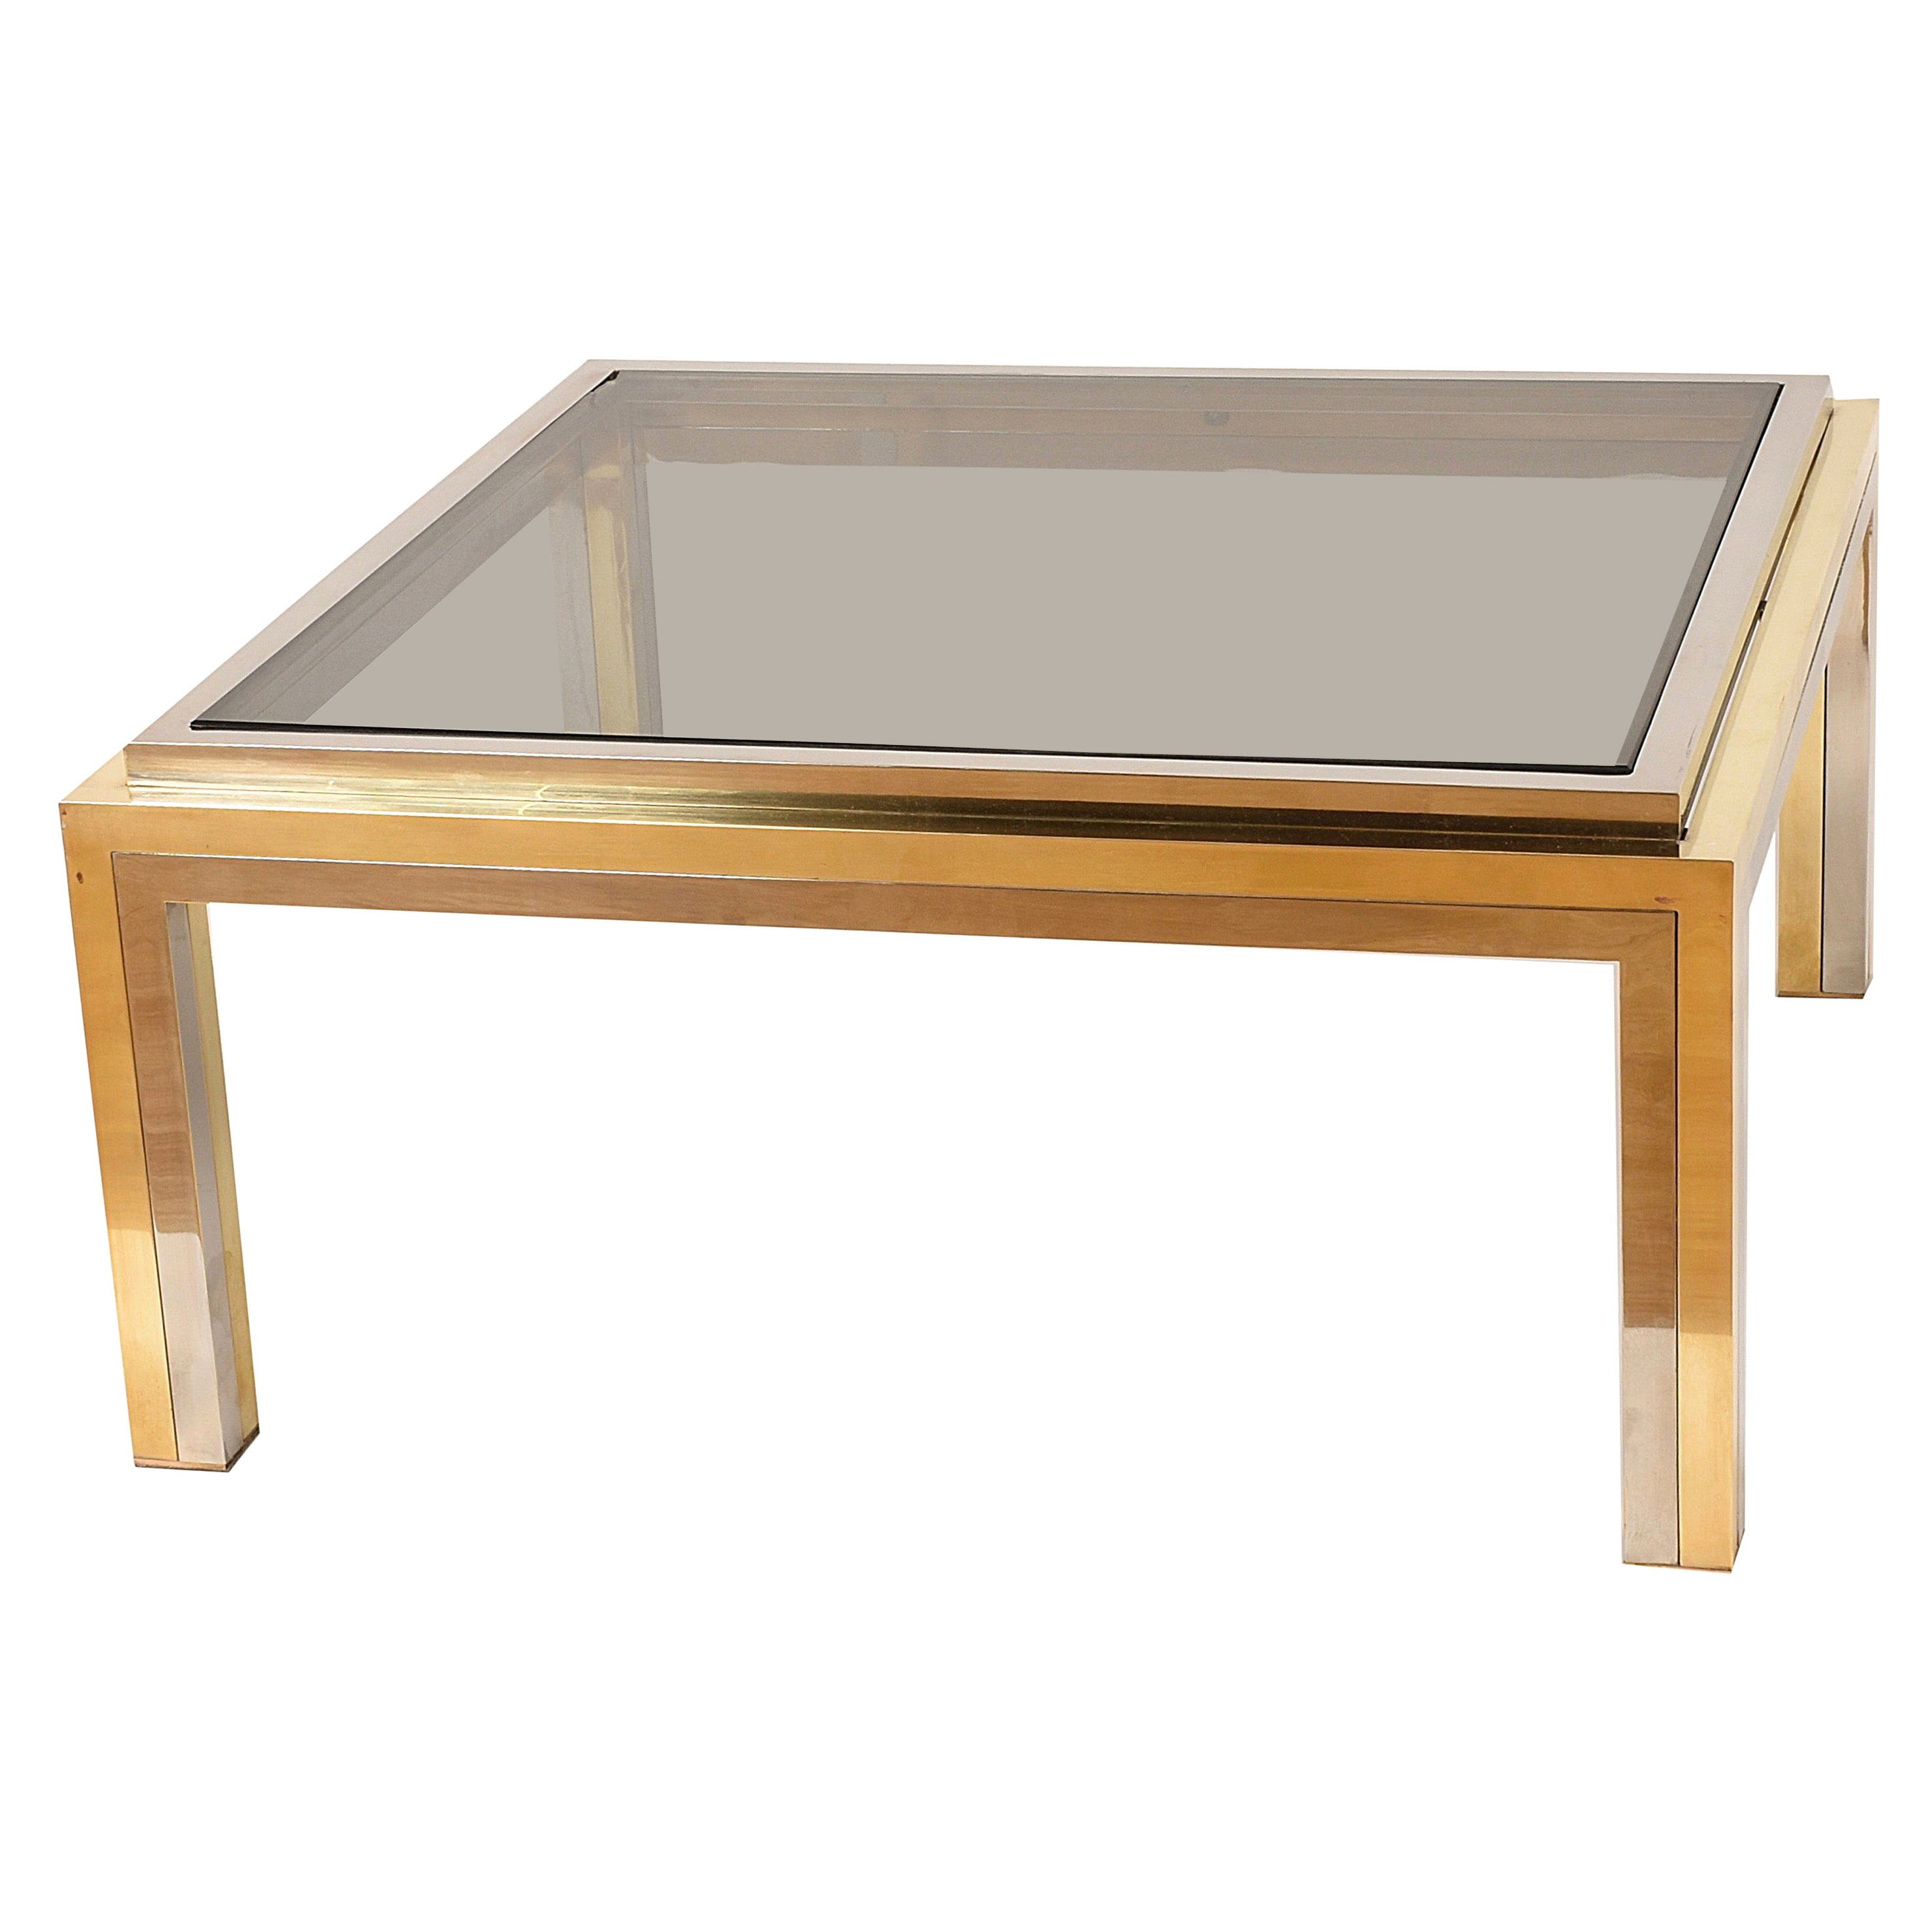 Midcentury Rega Smoked Glass, Brass and Chrome Square Coffee Table, Italy 1970s